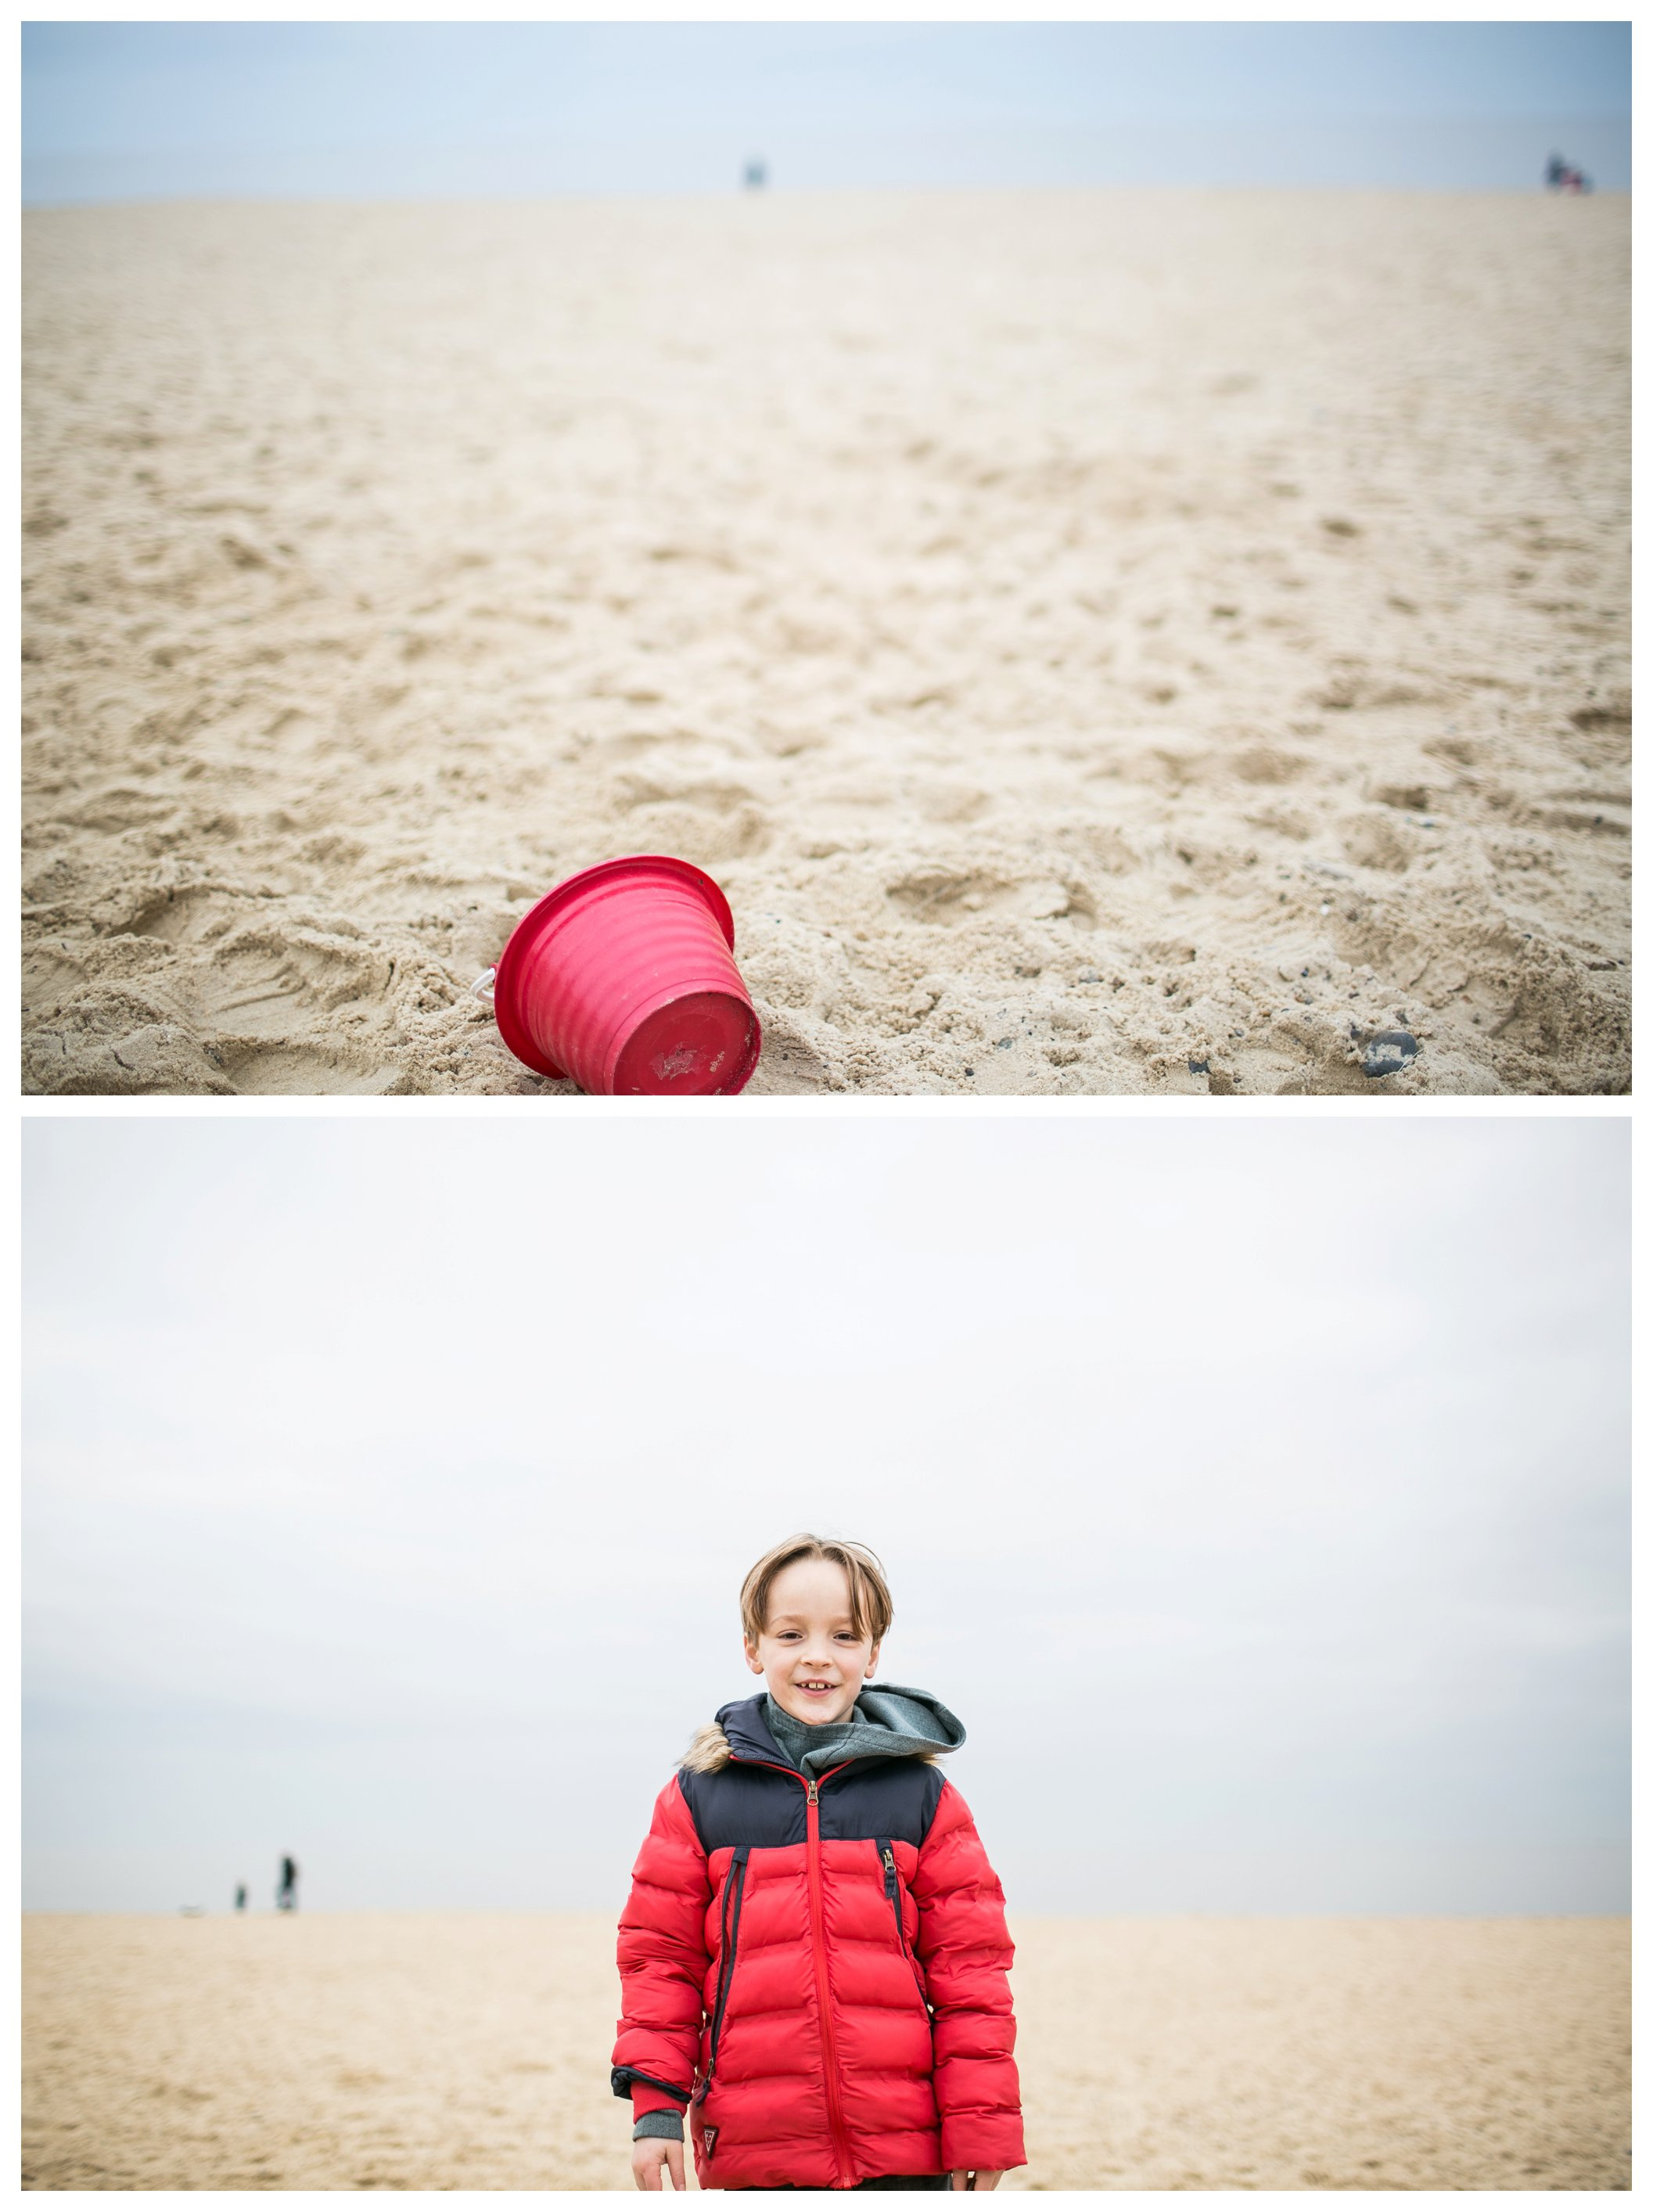 red bucket on beach, boy in red jacket on southwold beach